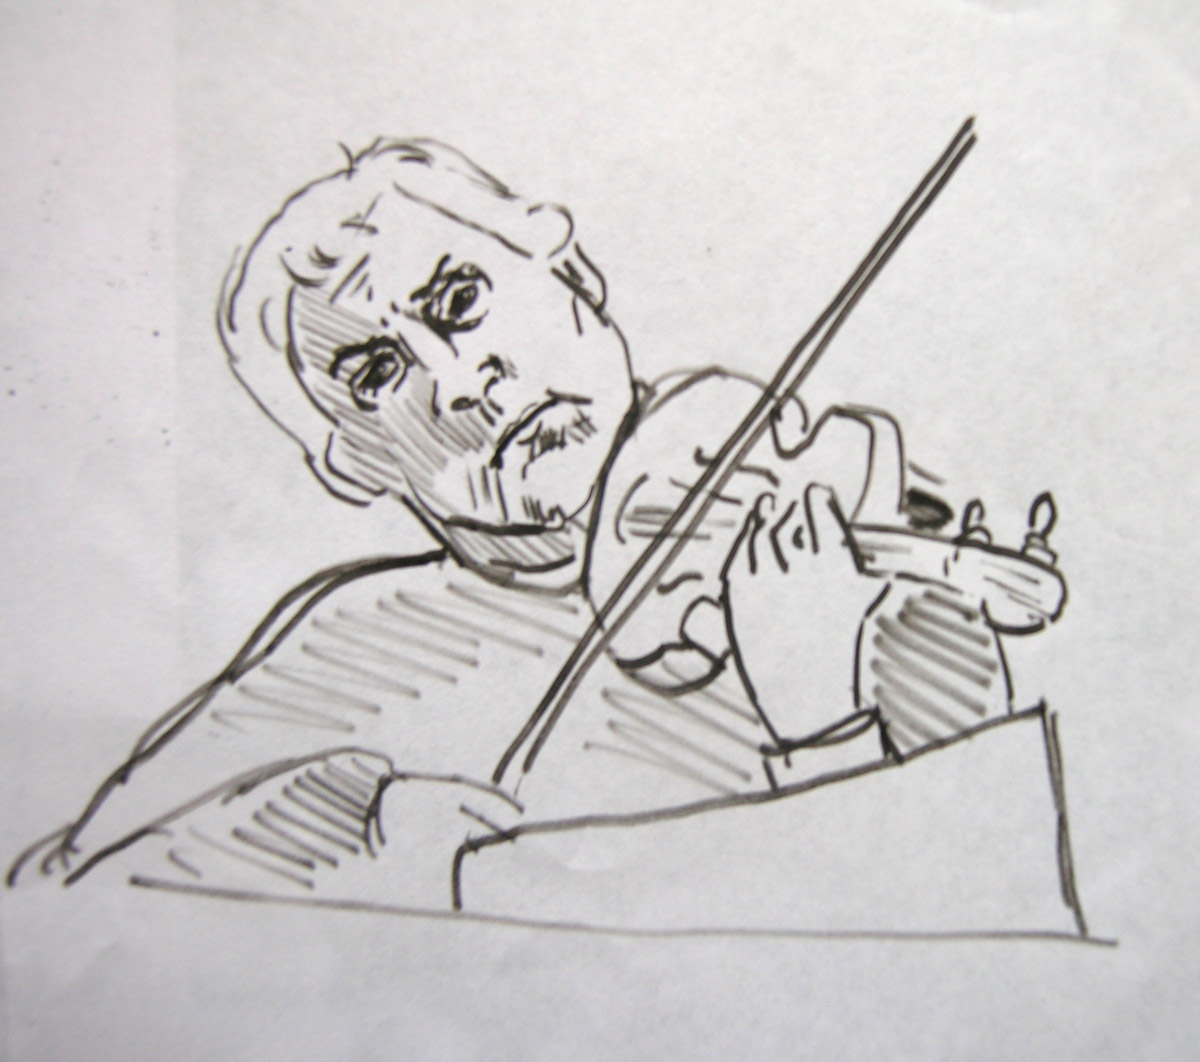 Sketch of Violinist, Haydn's Seven Last Words